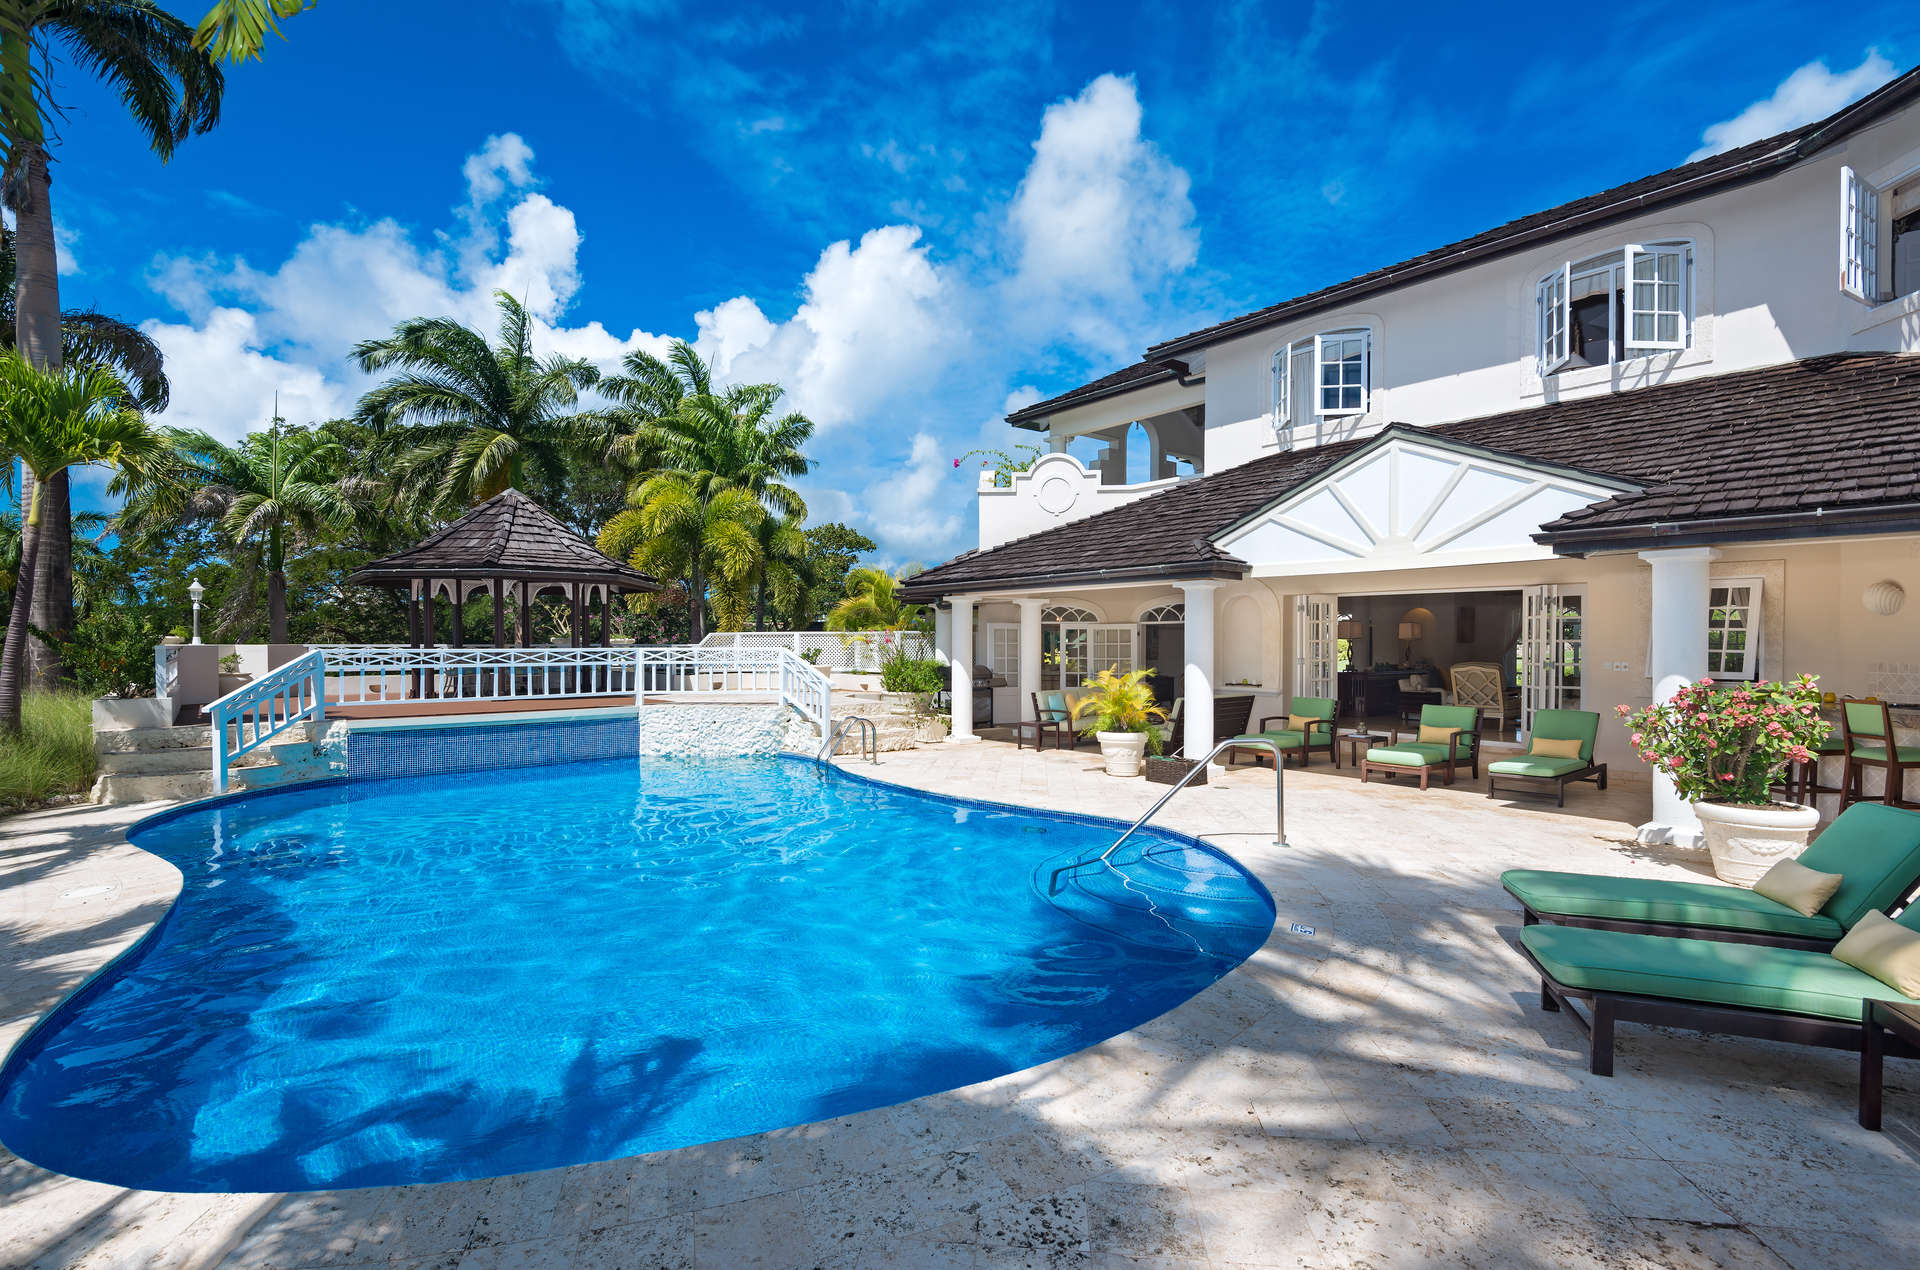 Luxury villa rentals caribbean - Barbados - St james - Royal westmoreland golf resort - Palm Ridge 18 | Seventh Heaven - Image 1/7